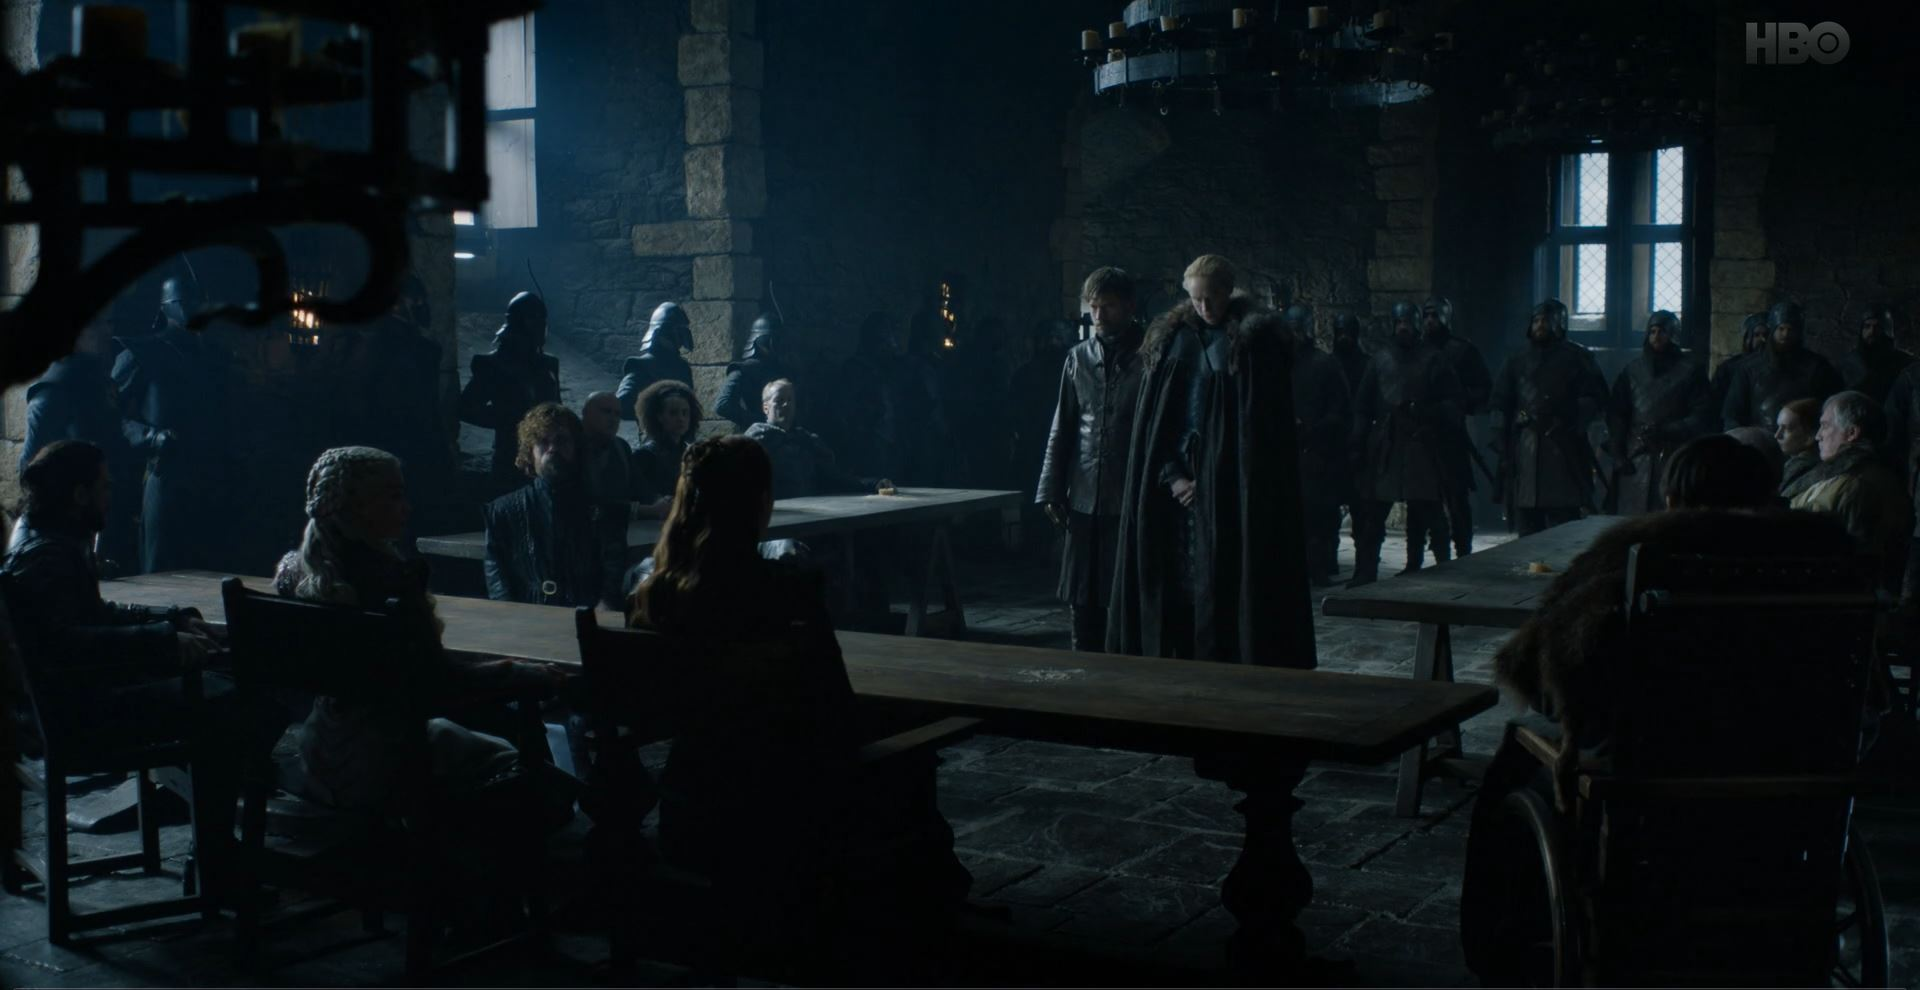 Game of Thrones S08E02 A Knight of the Seven Kingdoms Review - Brienne speaks about Jaime's character